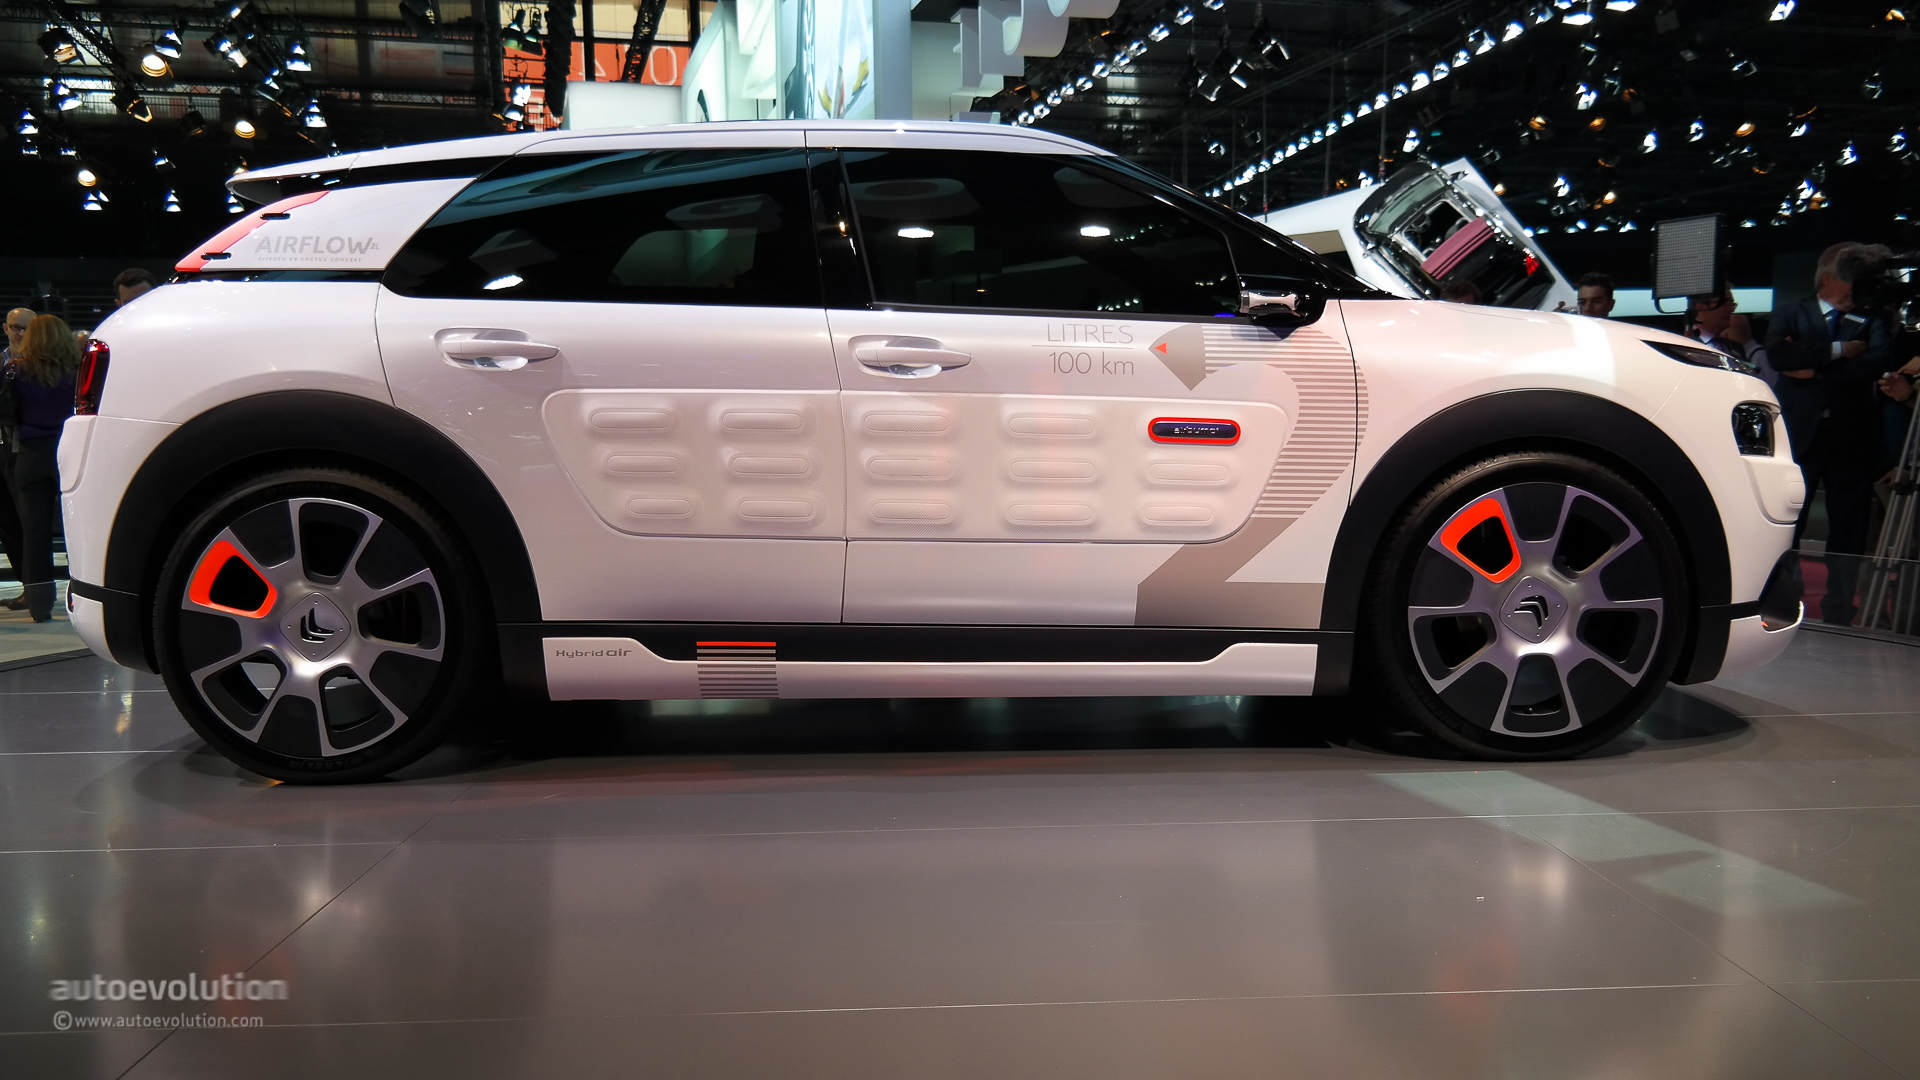 Citroen c4 cactus airflow 2l concept hisses at paris 2014 live photos autoevolution